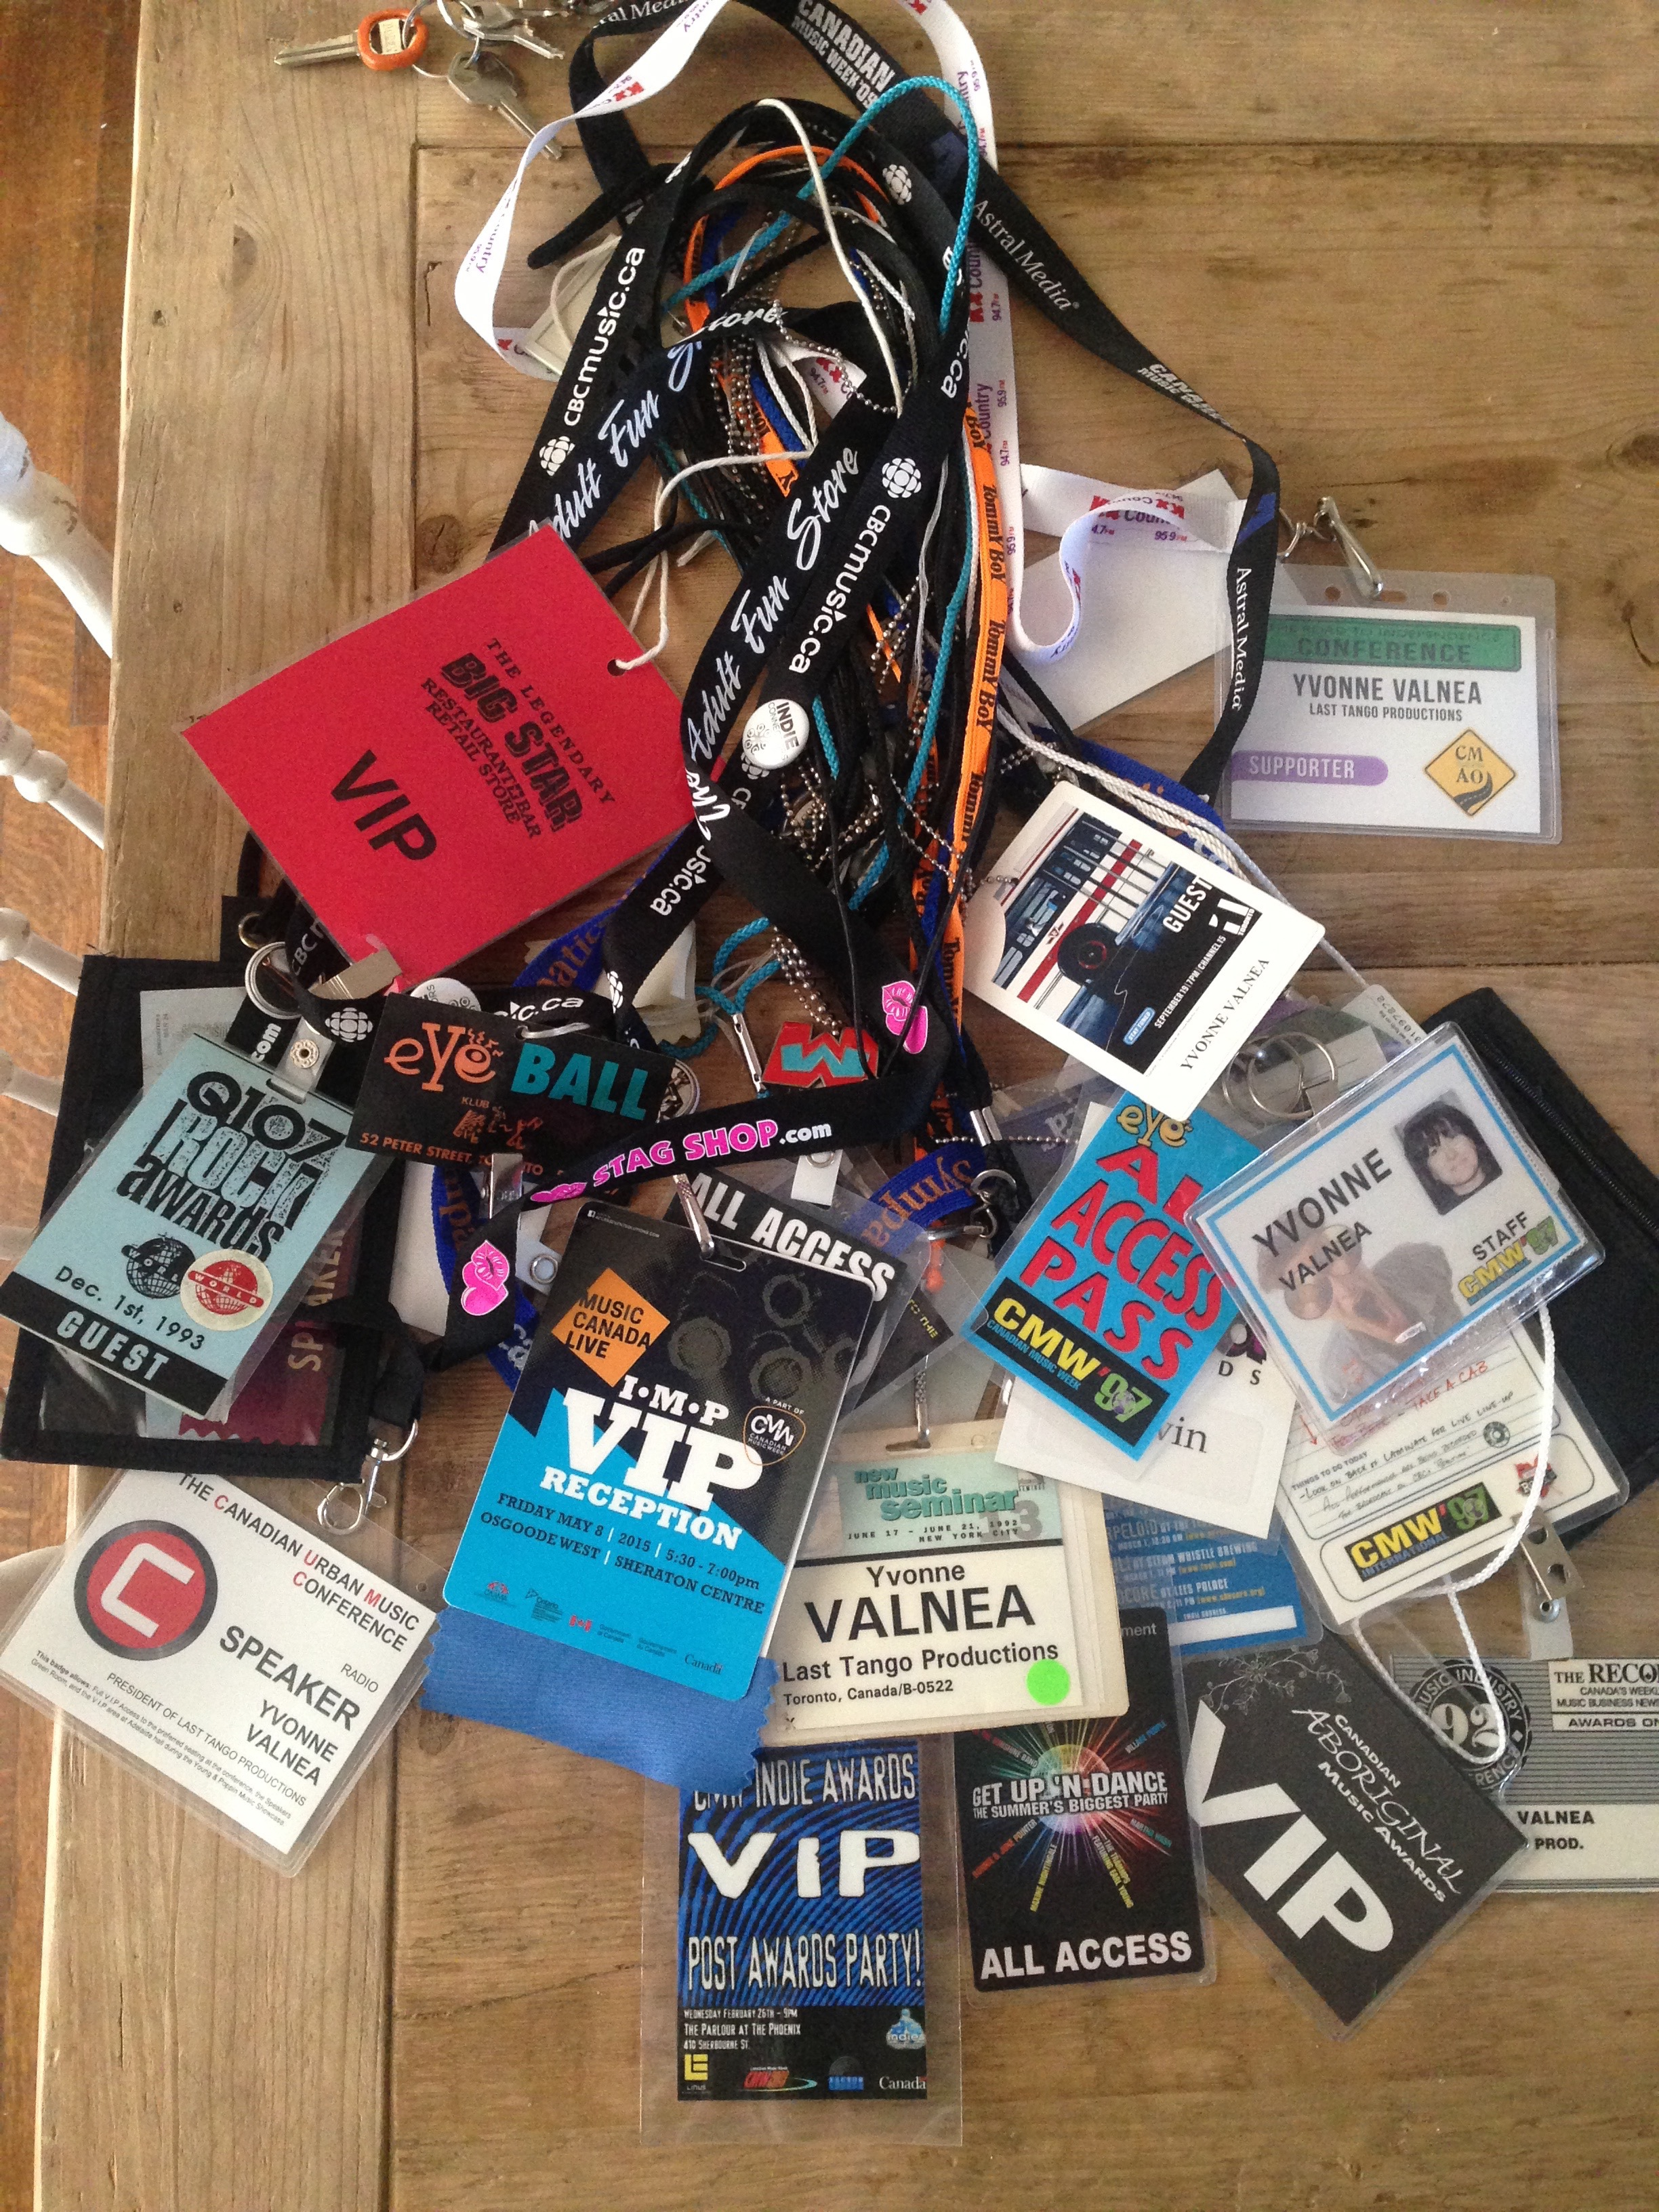 25 years of VIP'ing and backstage passes